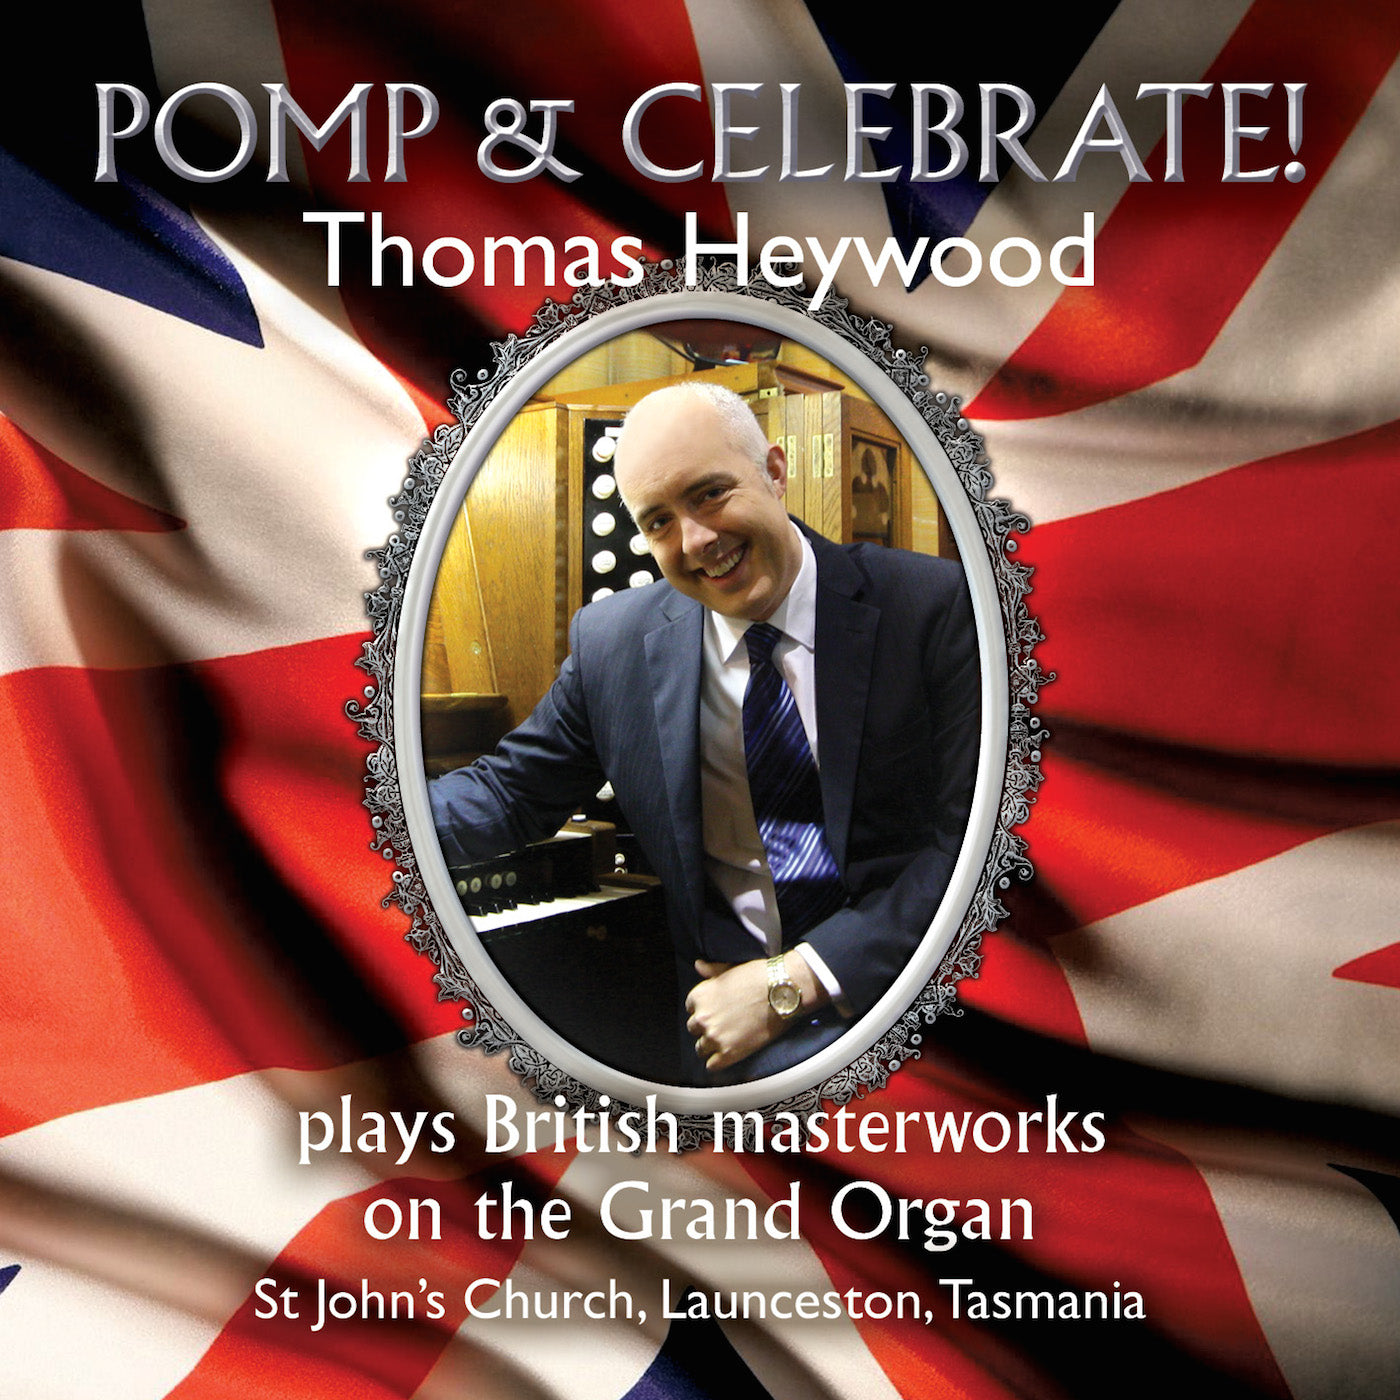 Pomp & Celebrate! (MP3 Album) - Concert Organ International